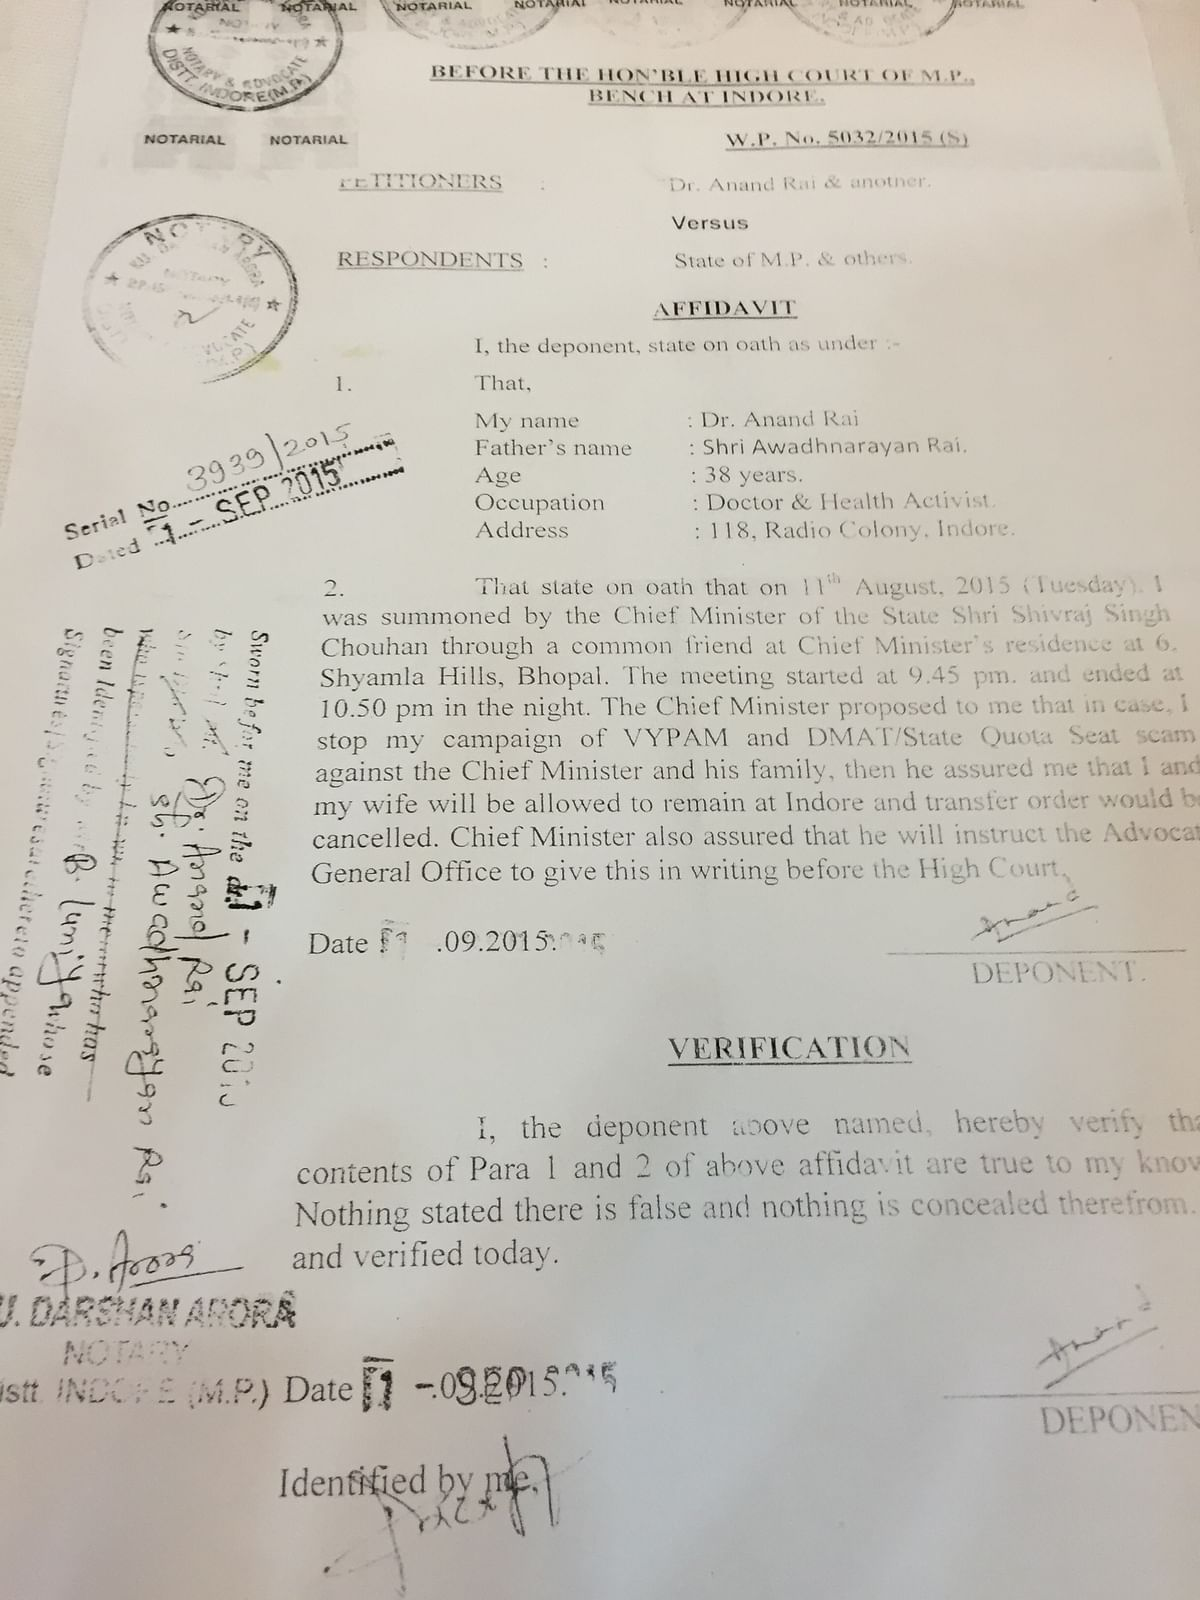 Exclusive copy of the affidavit filed by whistleblower Dr. Anand Rai with the MP High Court stating that Chief Minister Shivraj Singh Chauhan is trying to silence whistleblowers. (Photo: <i>The Quint</i>)